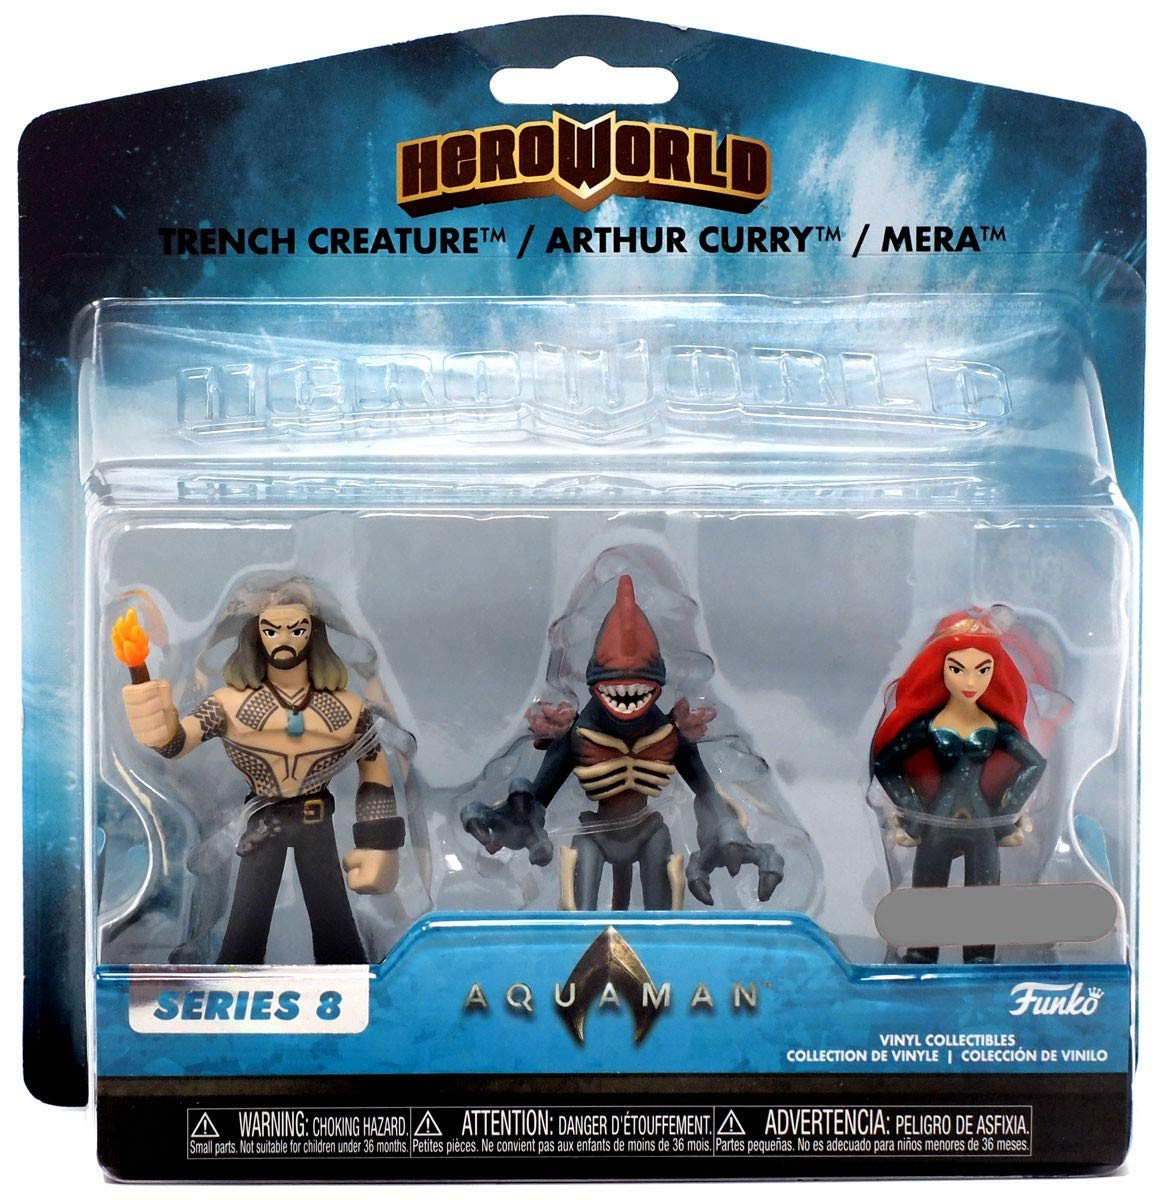 Amazon.com: Funko Hero World - Aquaman Movie [Series 8] - Trench Creature / Arthur Curry / Mera [3 Pack] - Target Exclusive: Toys & Games